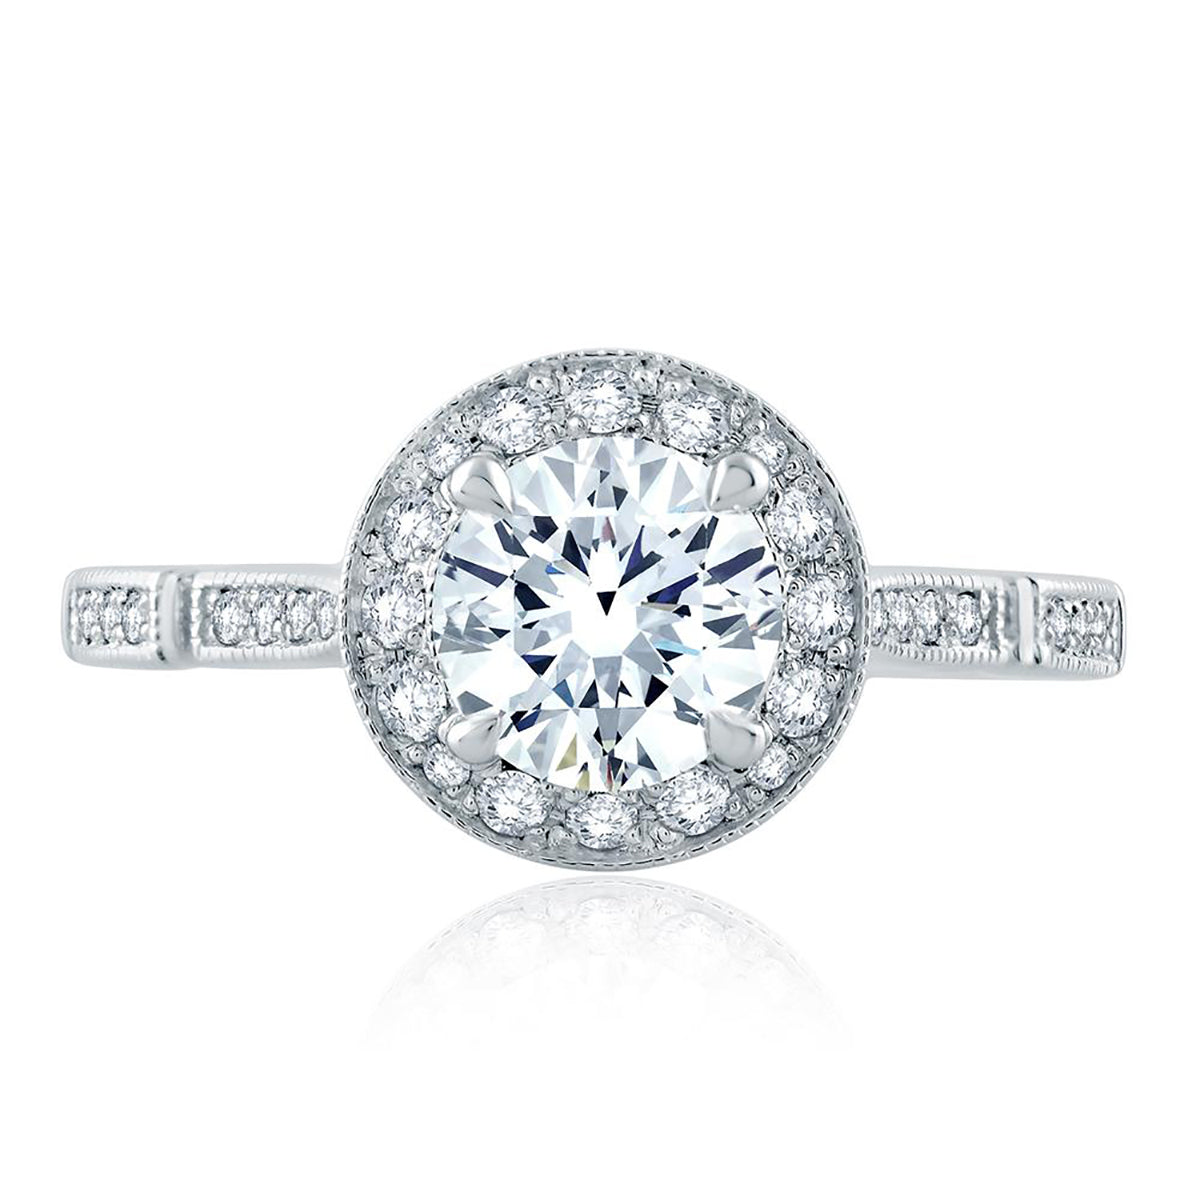 A.Jaffe Modern Vintage Ornate Gallery and Shank Detail Round Halo Engagement Ring ME2189Q/128